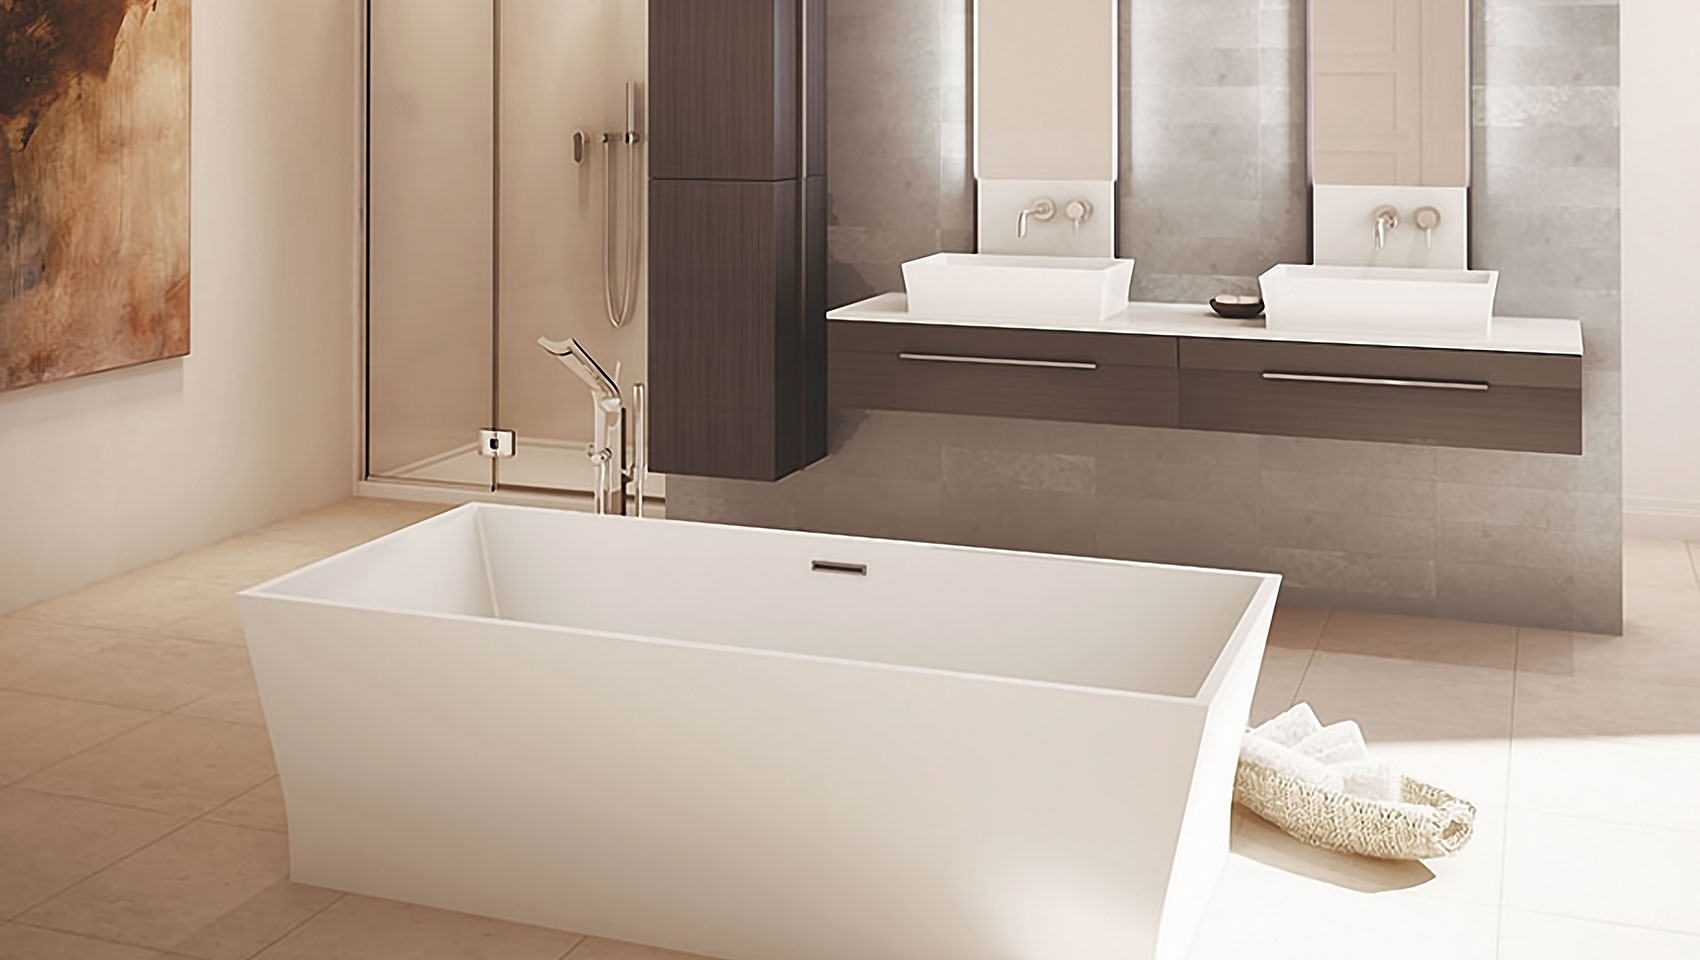 Kitchen Design Center Bathroom Design And Kitchen Design Store Preston Design